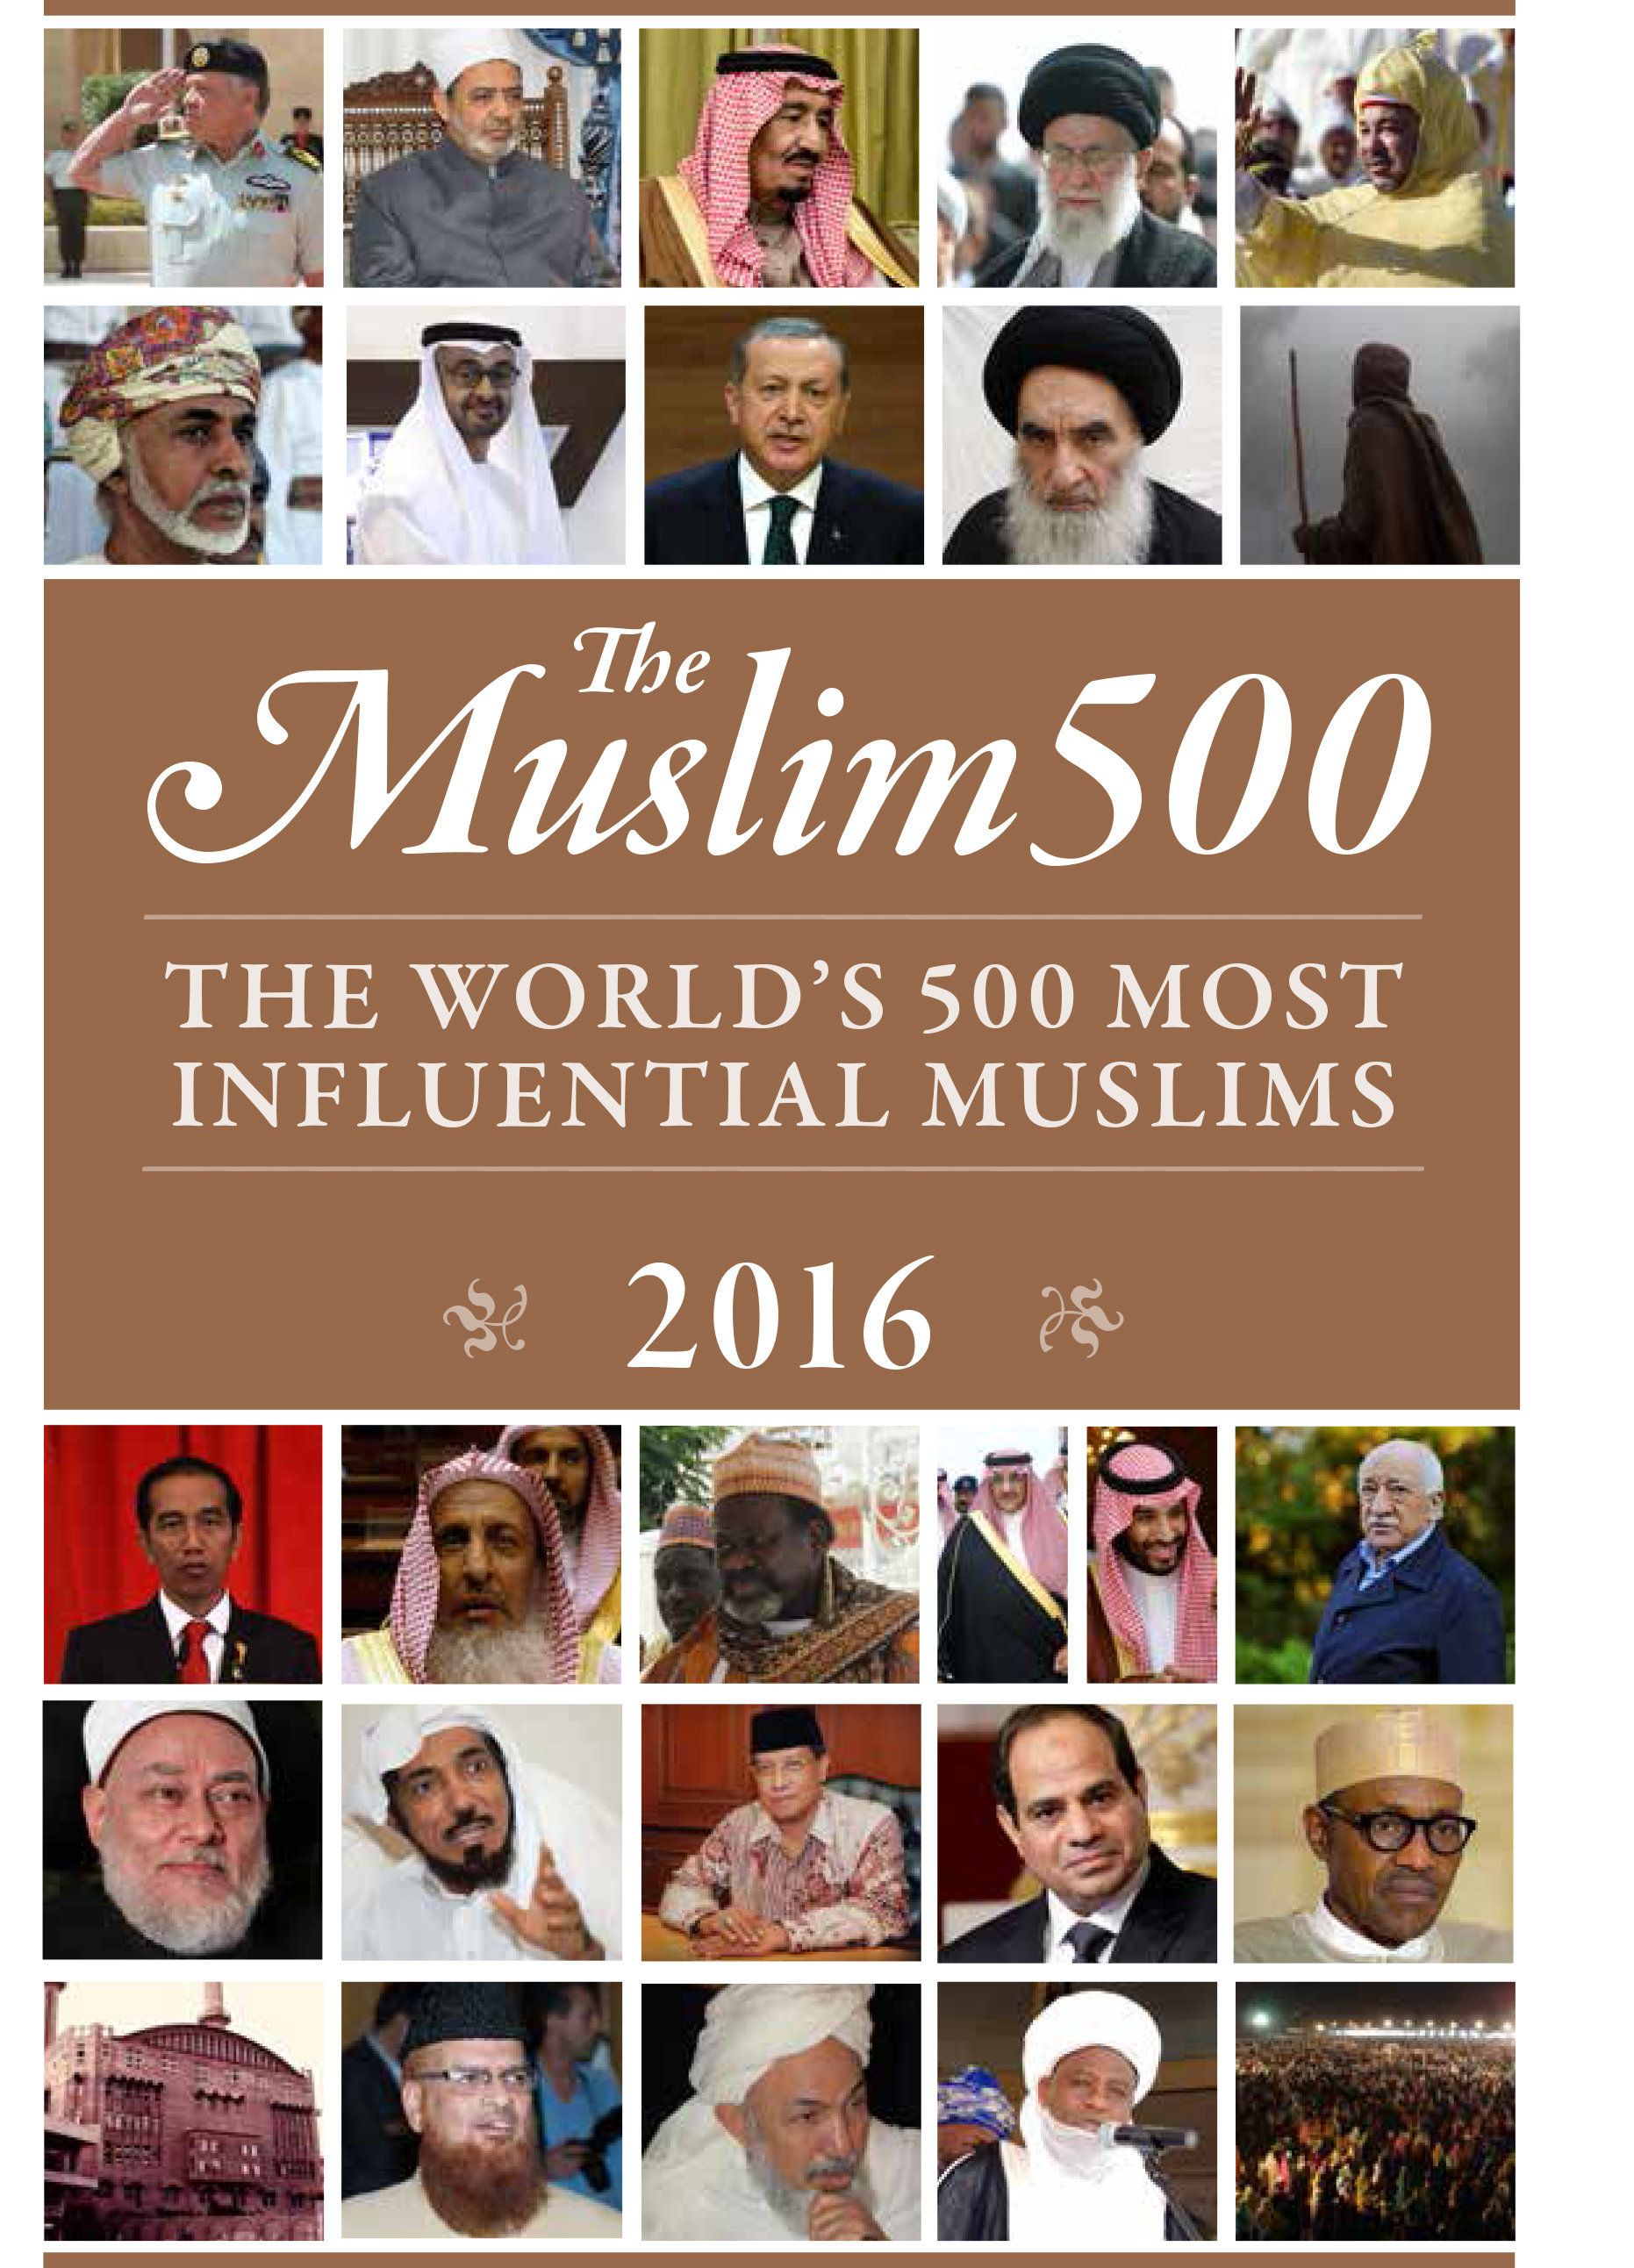 The Muslim 500: The World's 500 Most Influential Muslims.